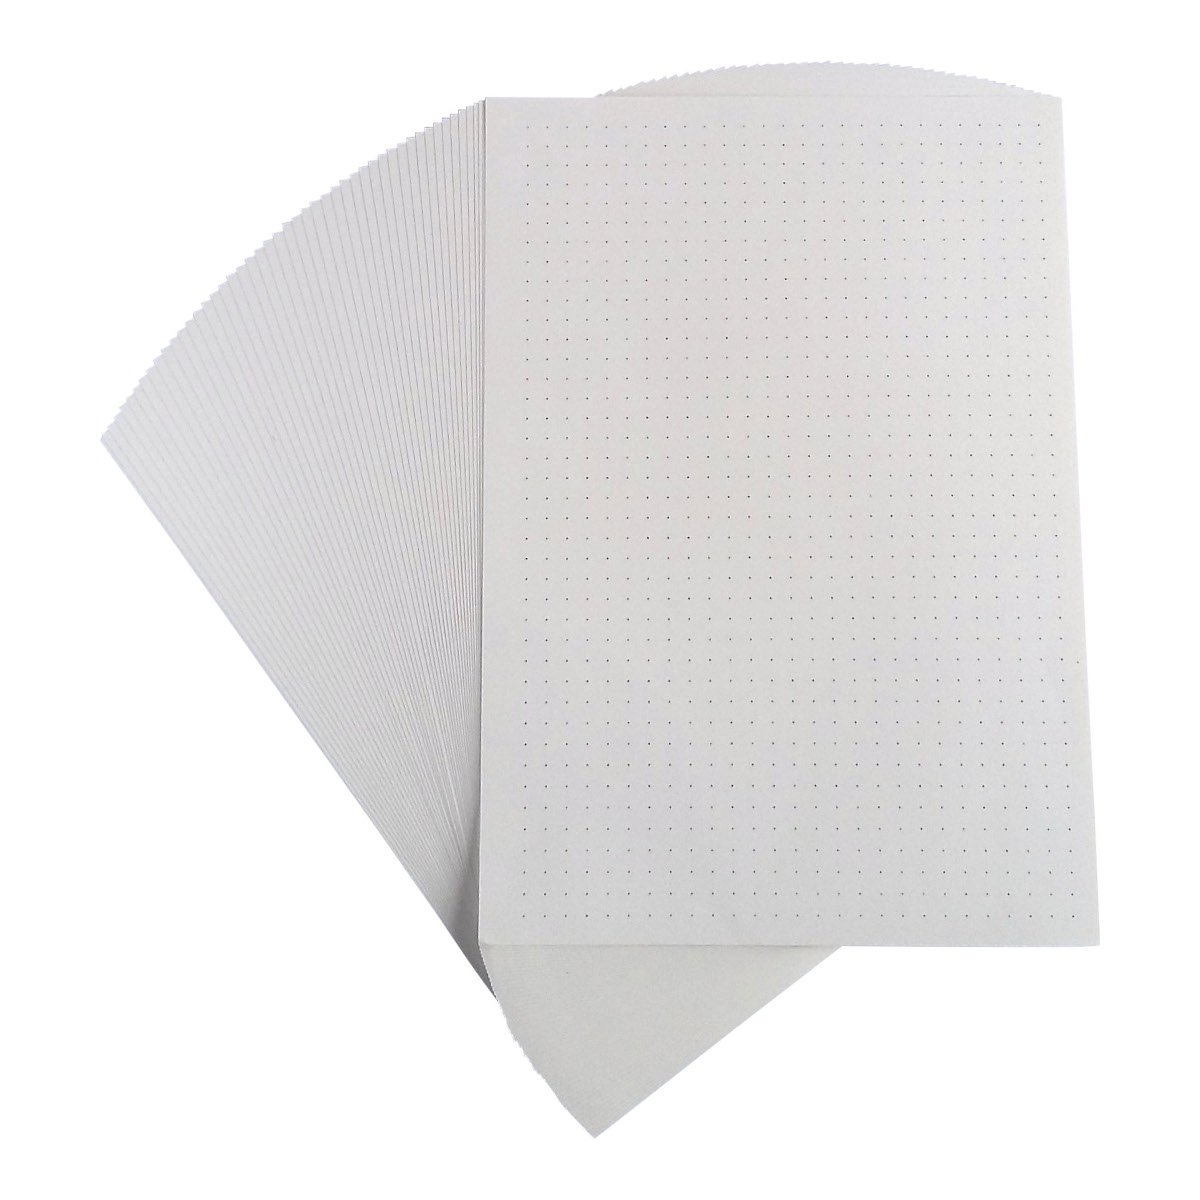 A5 Dot Grid Loose Leaf Filler Paper For Ring Binder Notebook Planner Inserts Filofax, Carpe Diem, Kikki K - Unpunched Refills, 50 Sheets x 4 Packs, 200 Sheets, 400 Pages, 100gsm, Ivory by Unpunched Refills (Image #3)